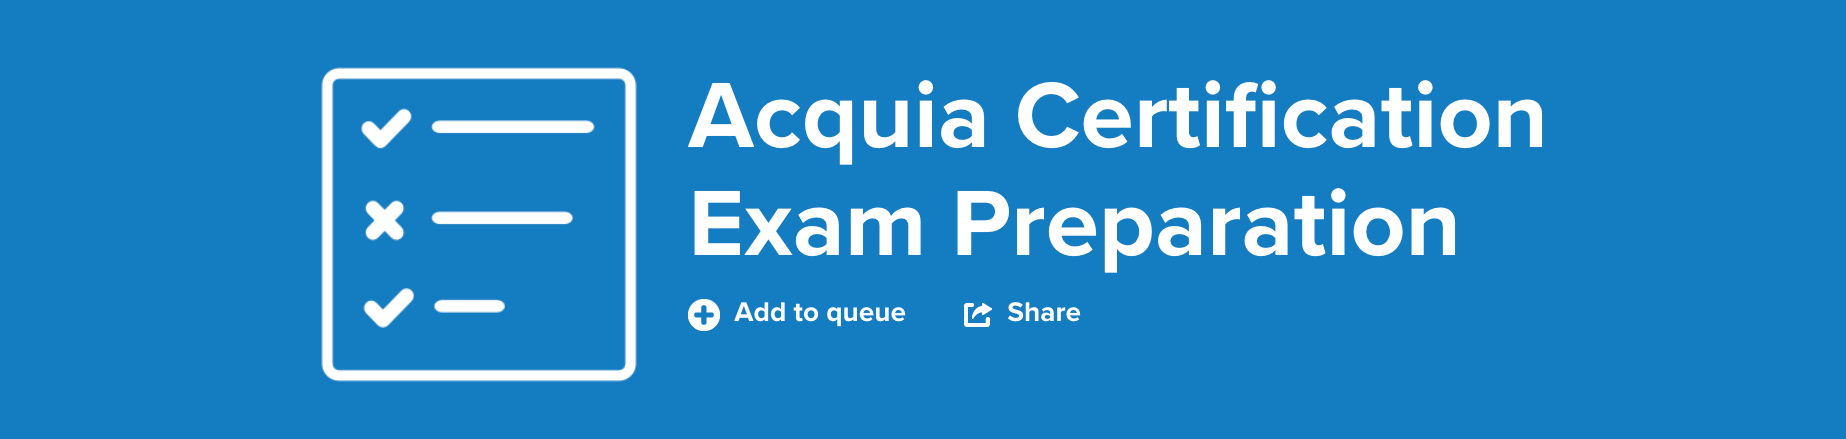 Acquia Exam Preparation title